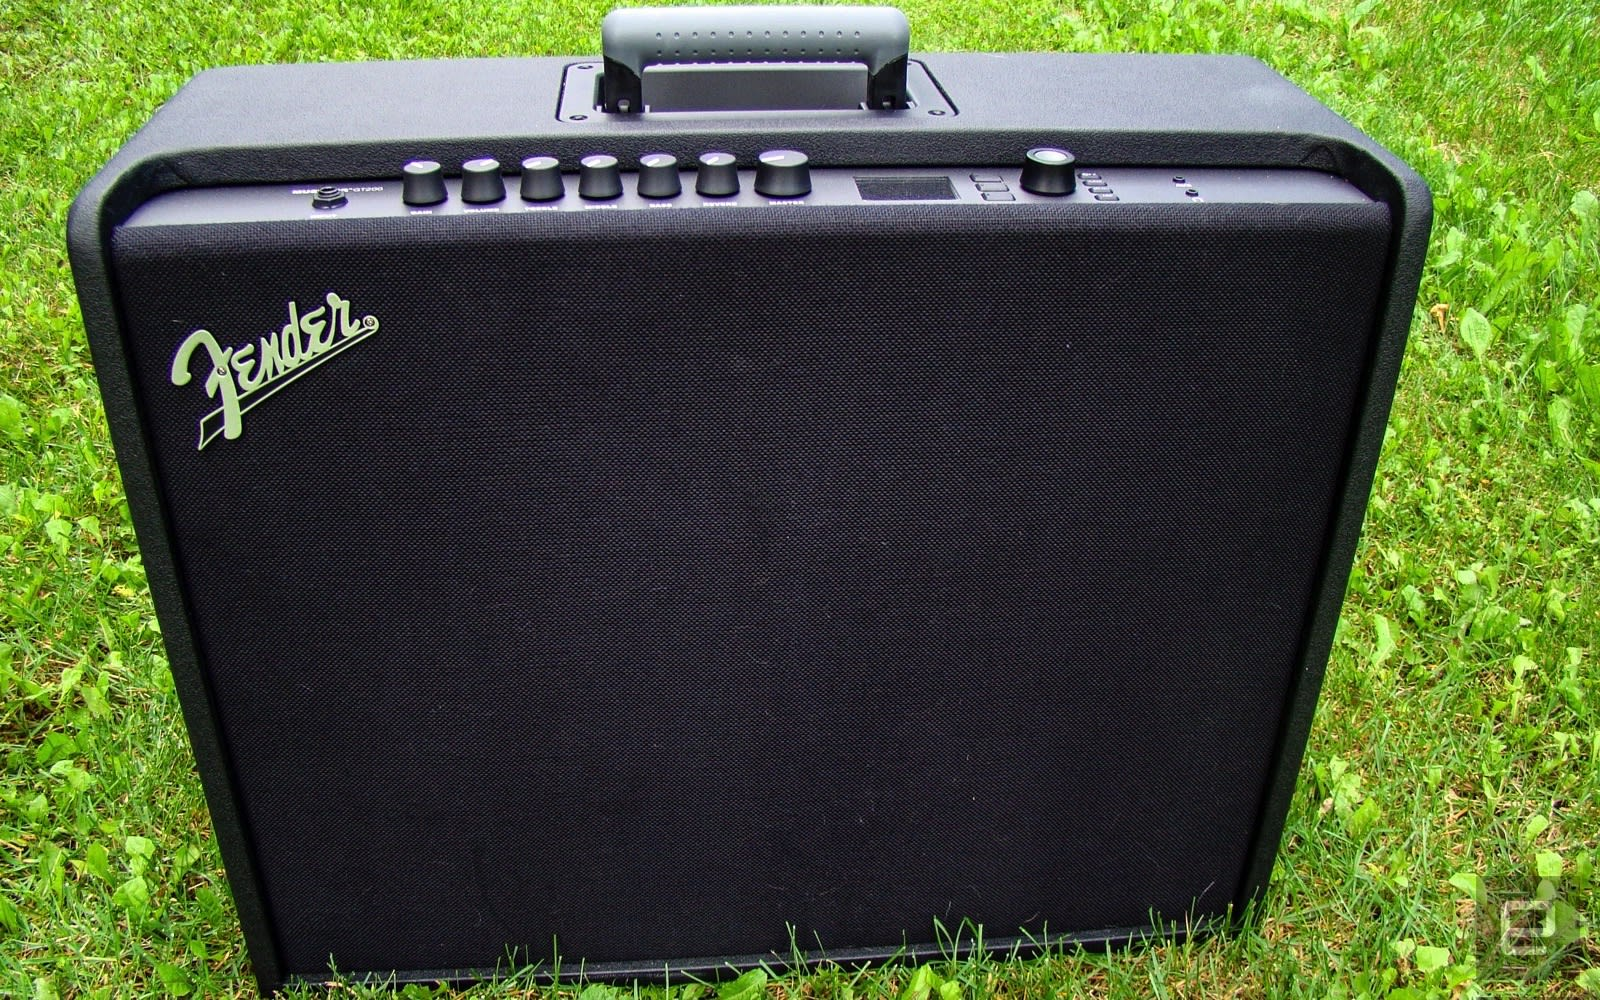 Fender's Mustang GT amps pack an overkill of digital options on